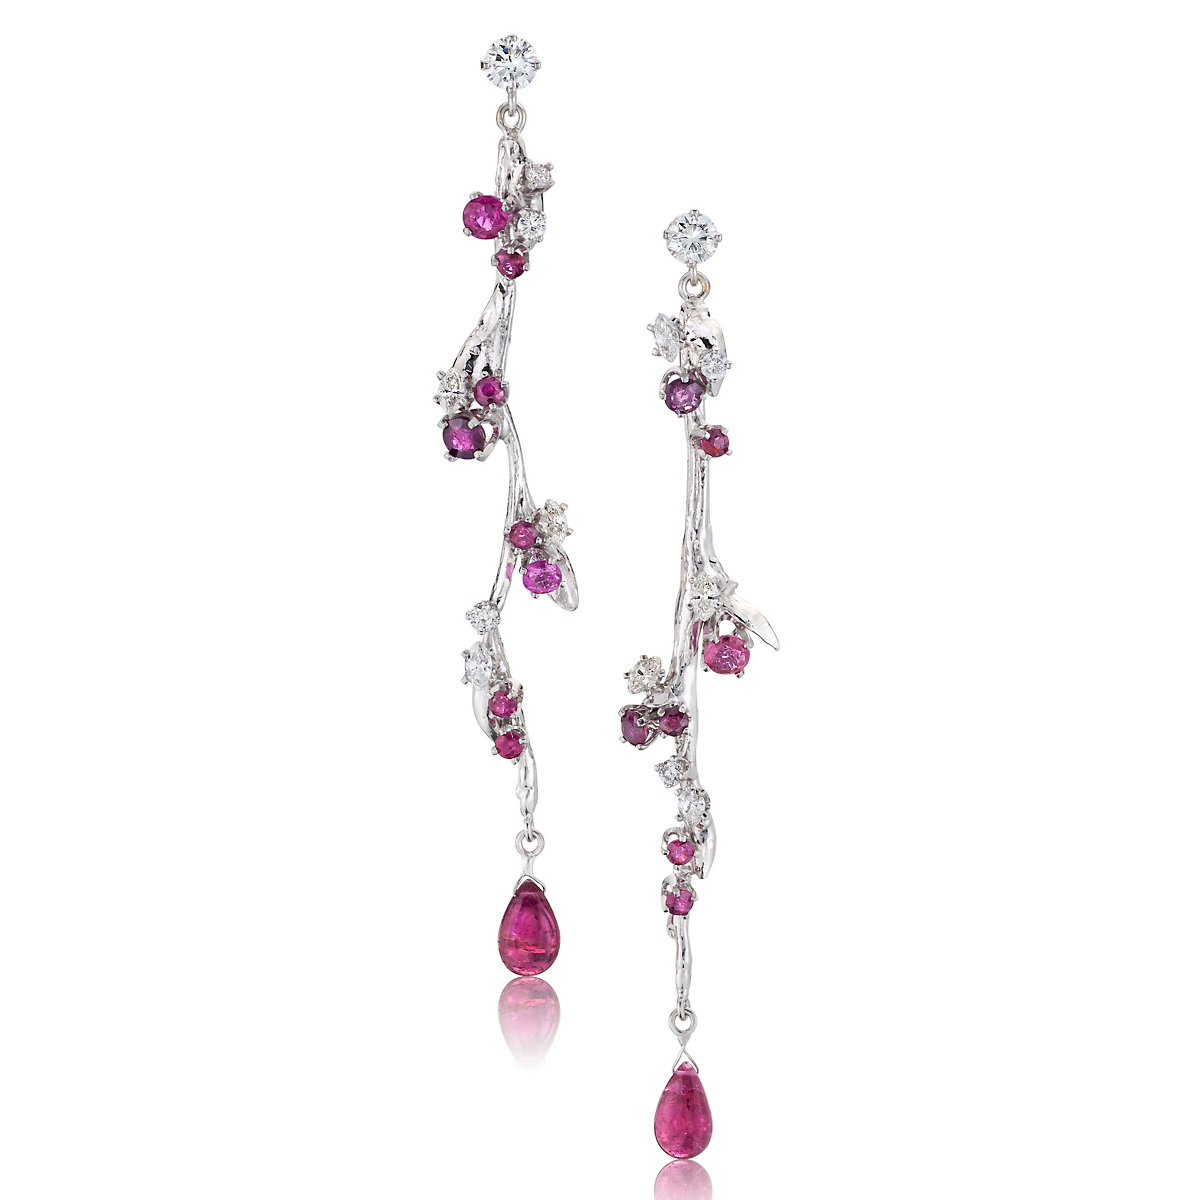 Russell Trusso Ruby, Rubellite & Diamond Willow Earrings